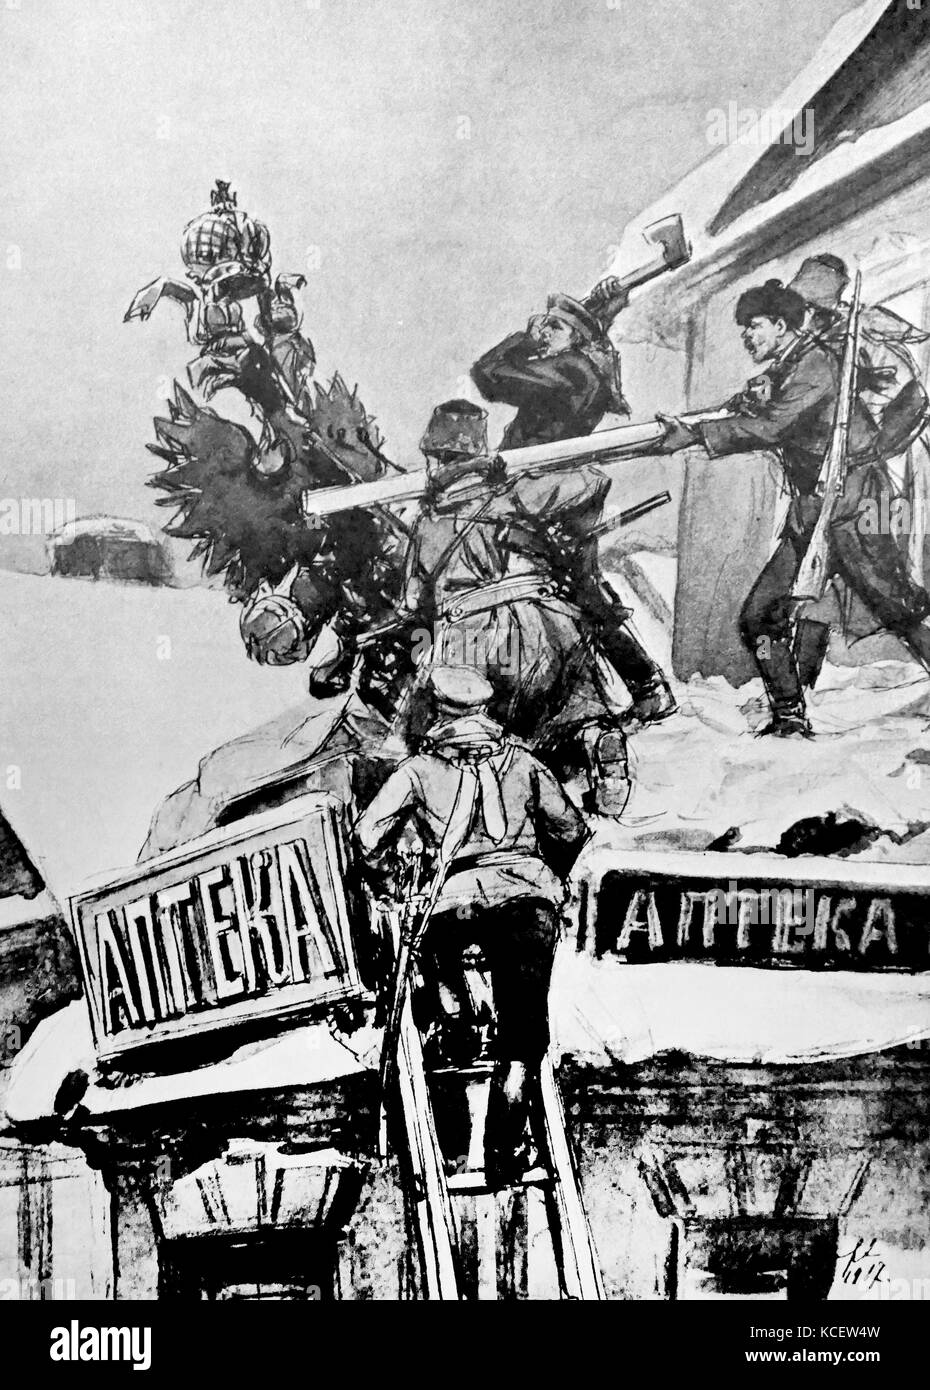 Russian revolutionaries destroying emblems of Tsarist rule 1917 - Stock Image